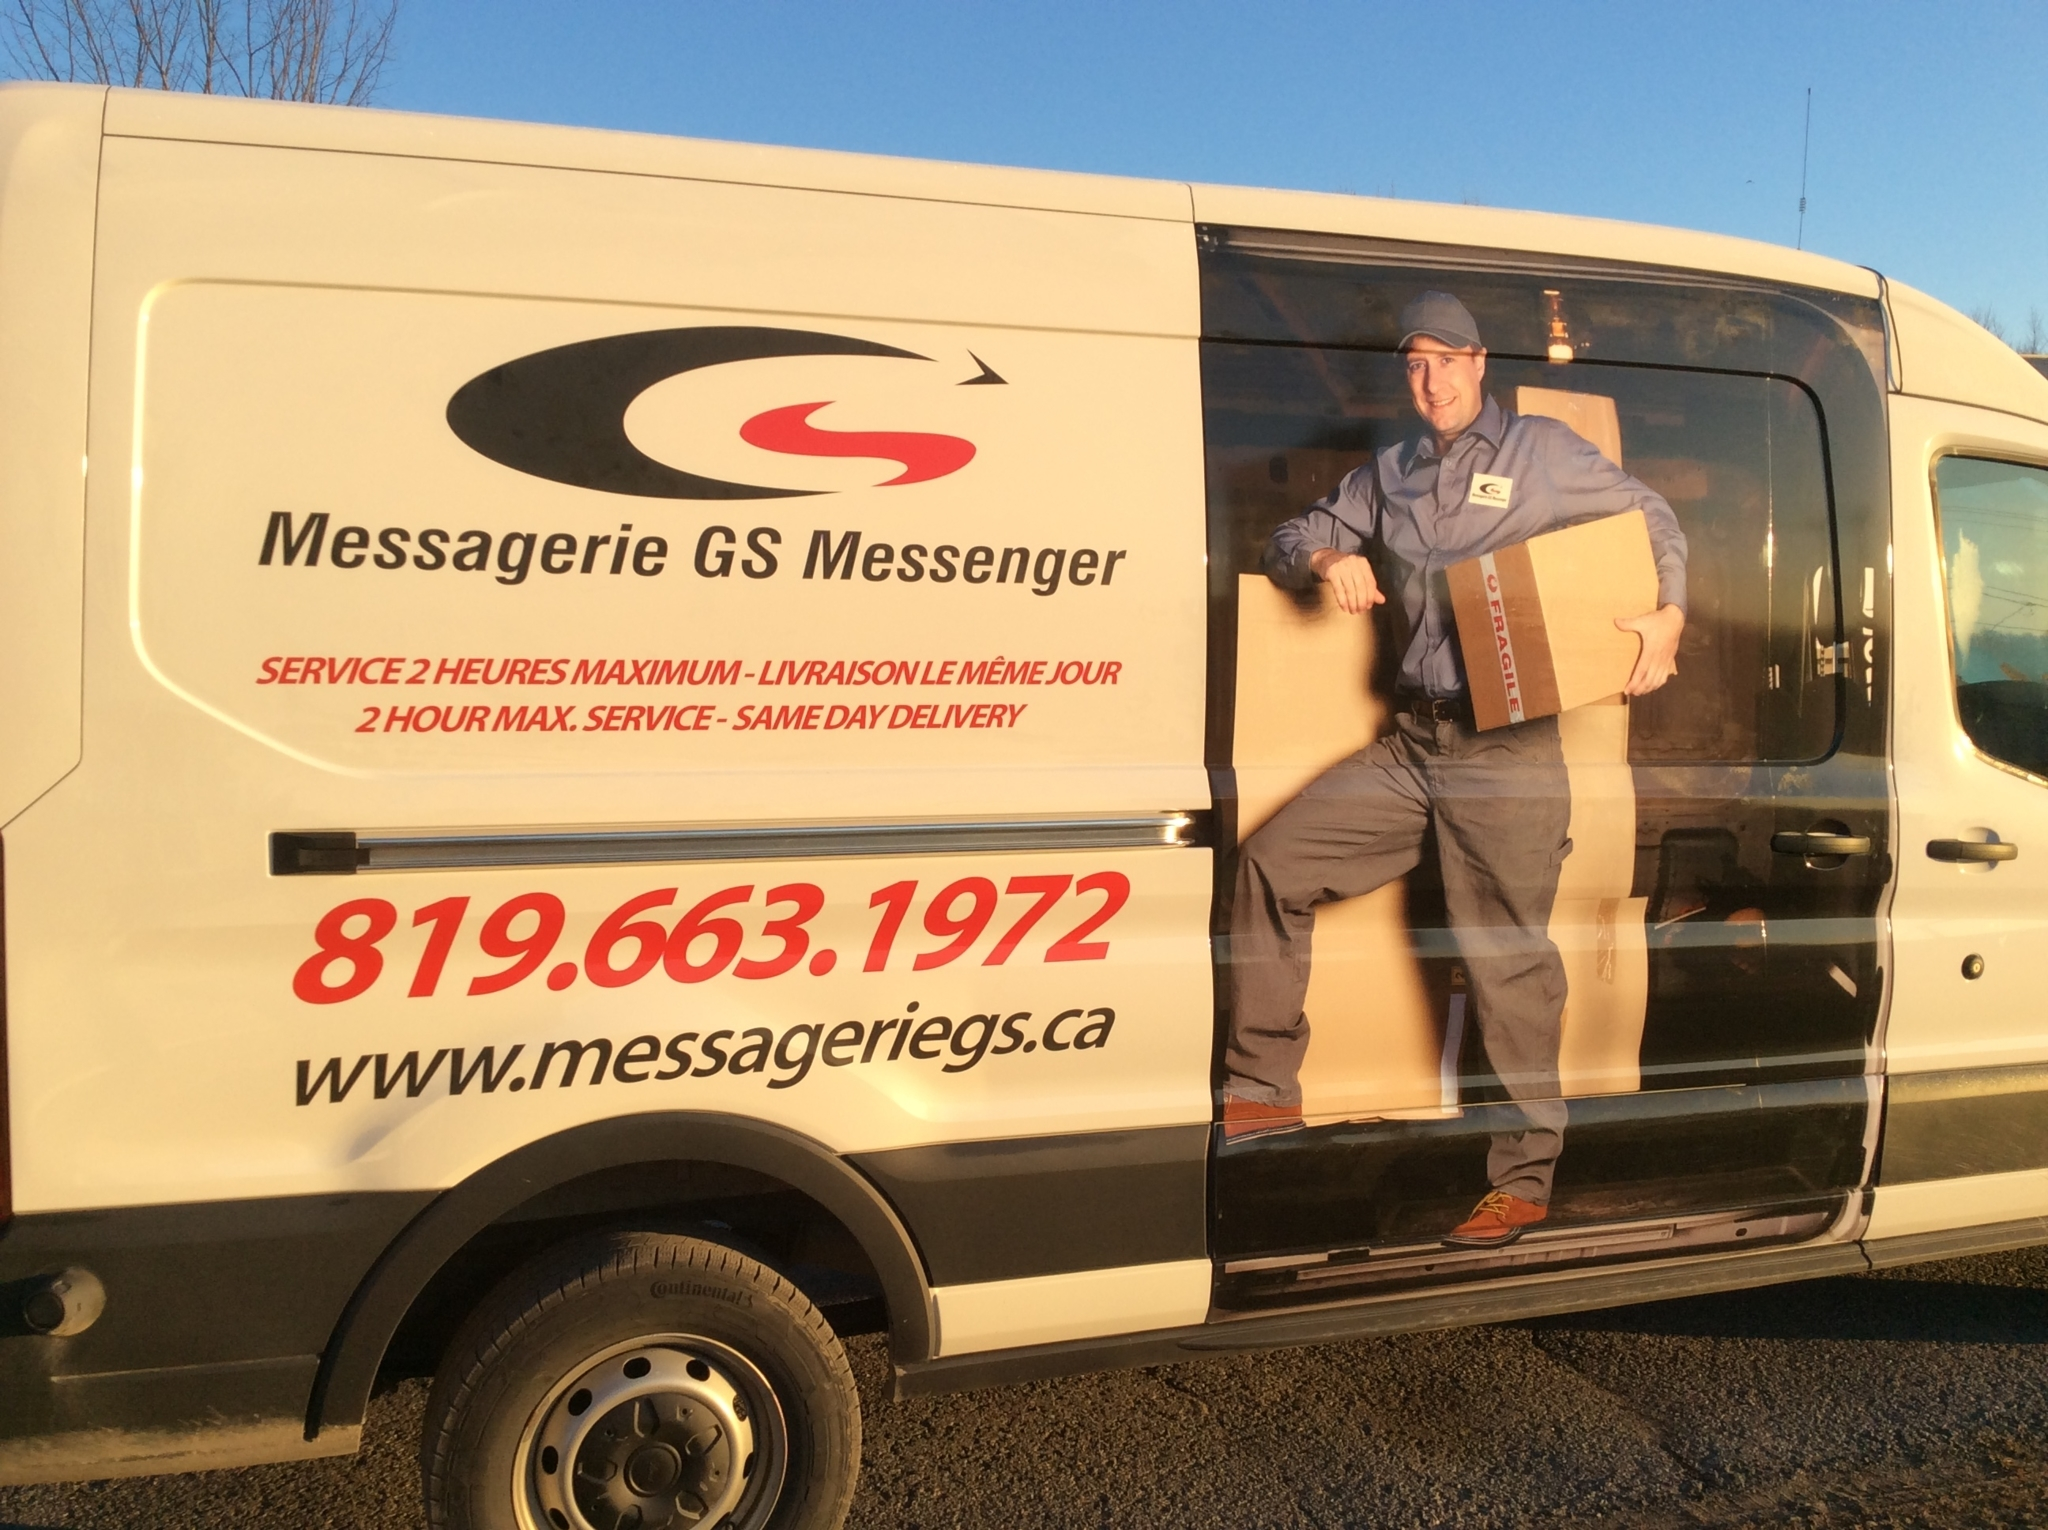 Messagerie GS Messenger à Gatineau